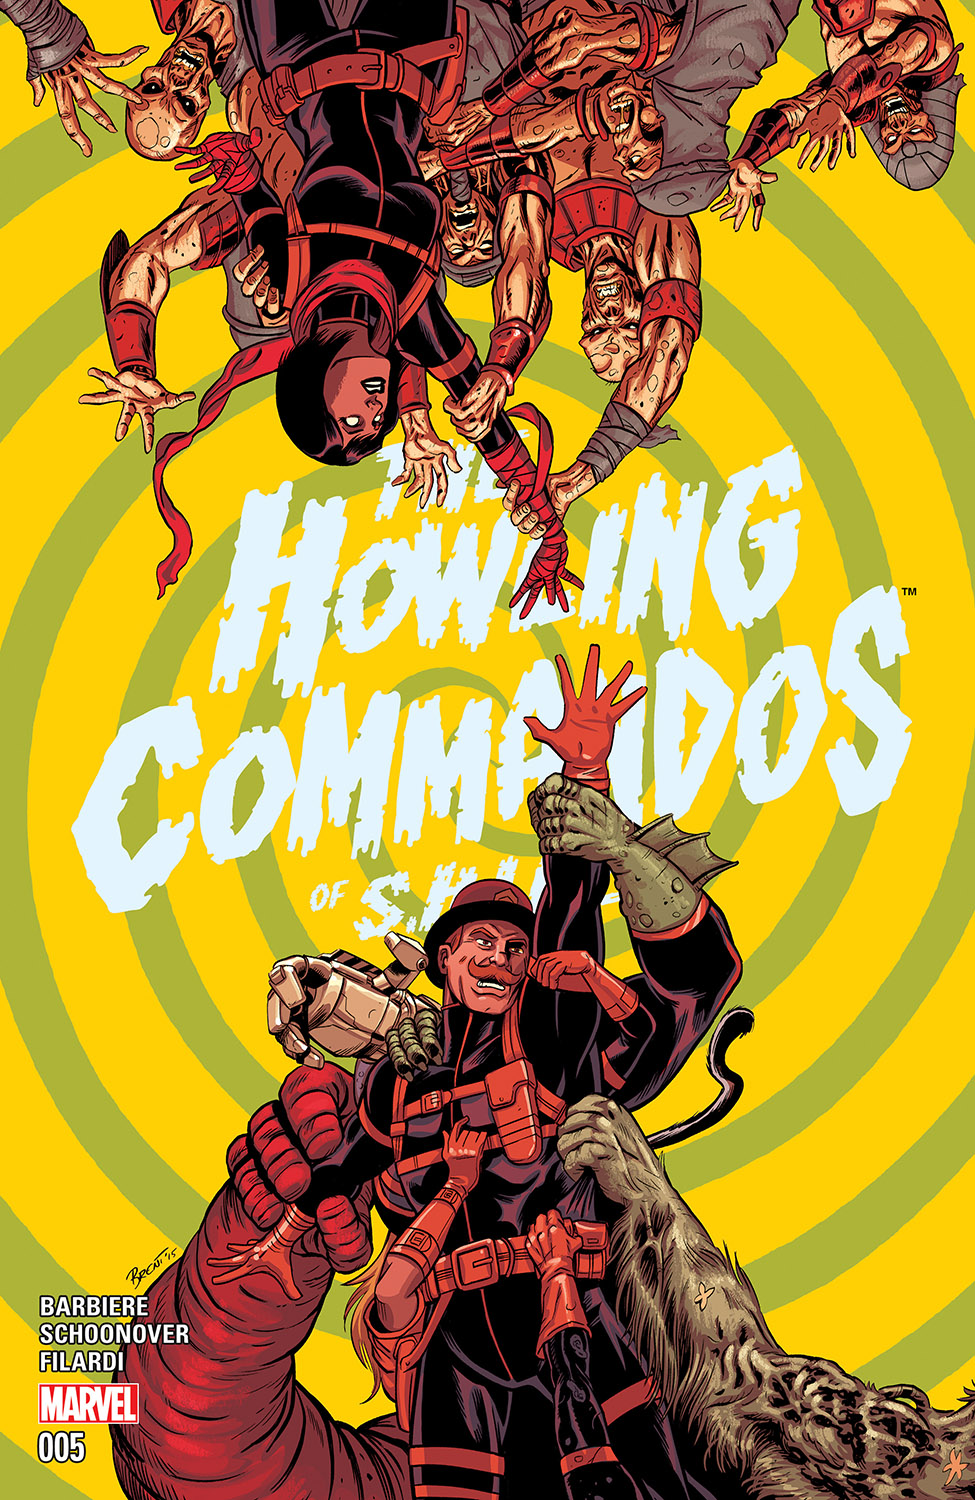 Howling Commandos of S.H.I.E.L.D. (2015) #5